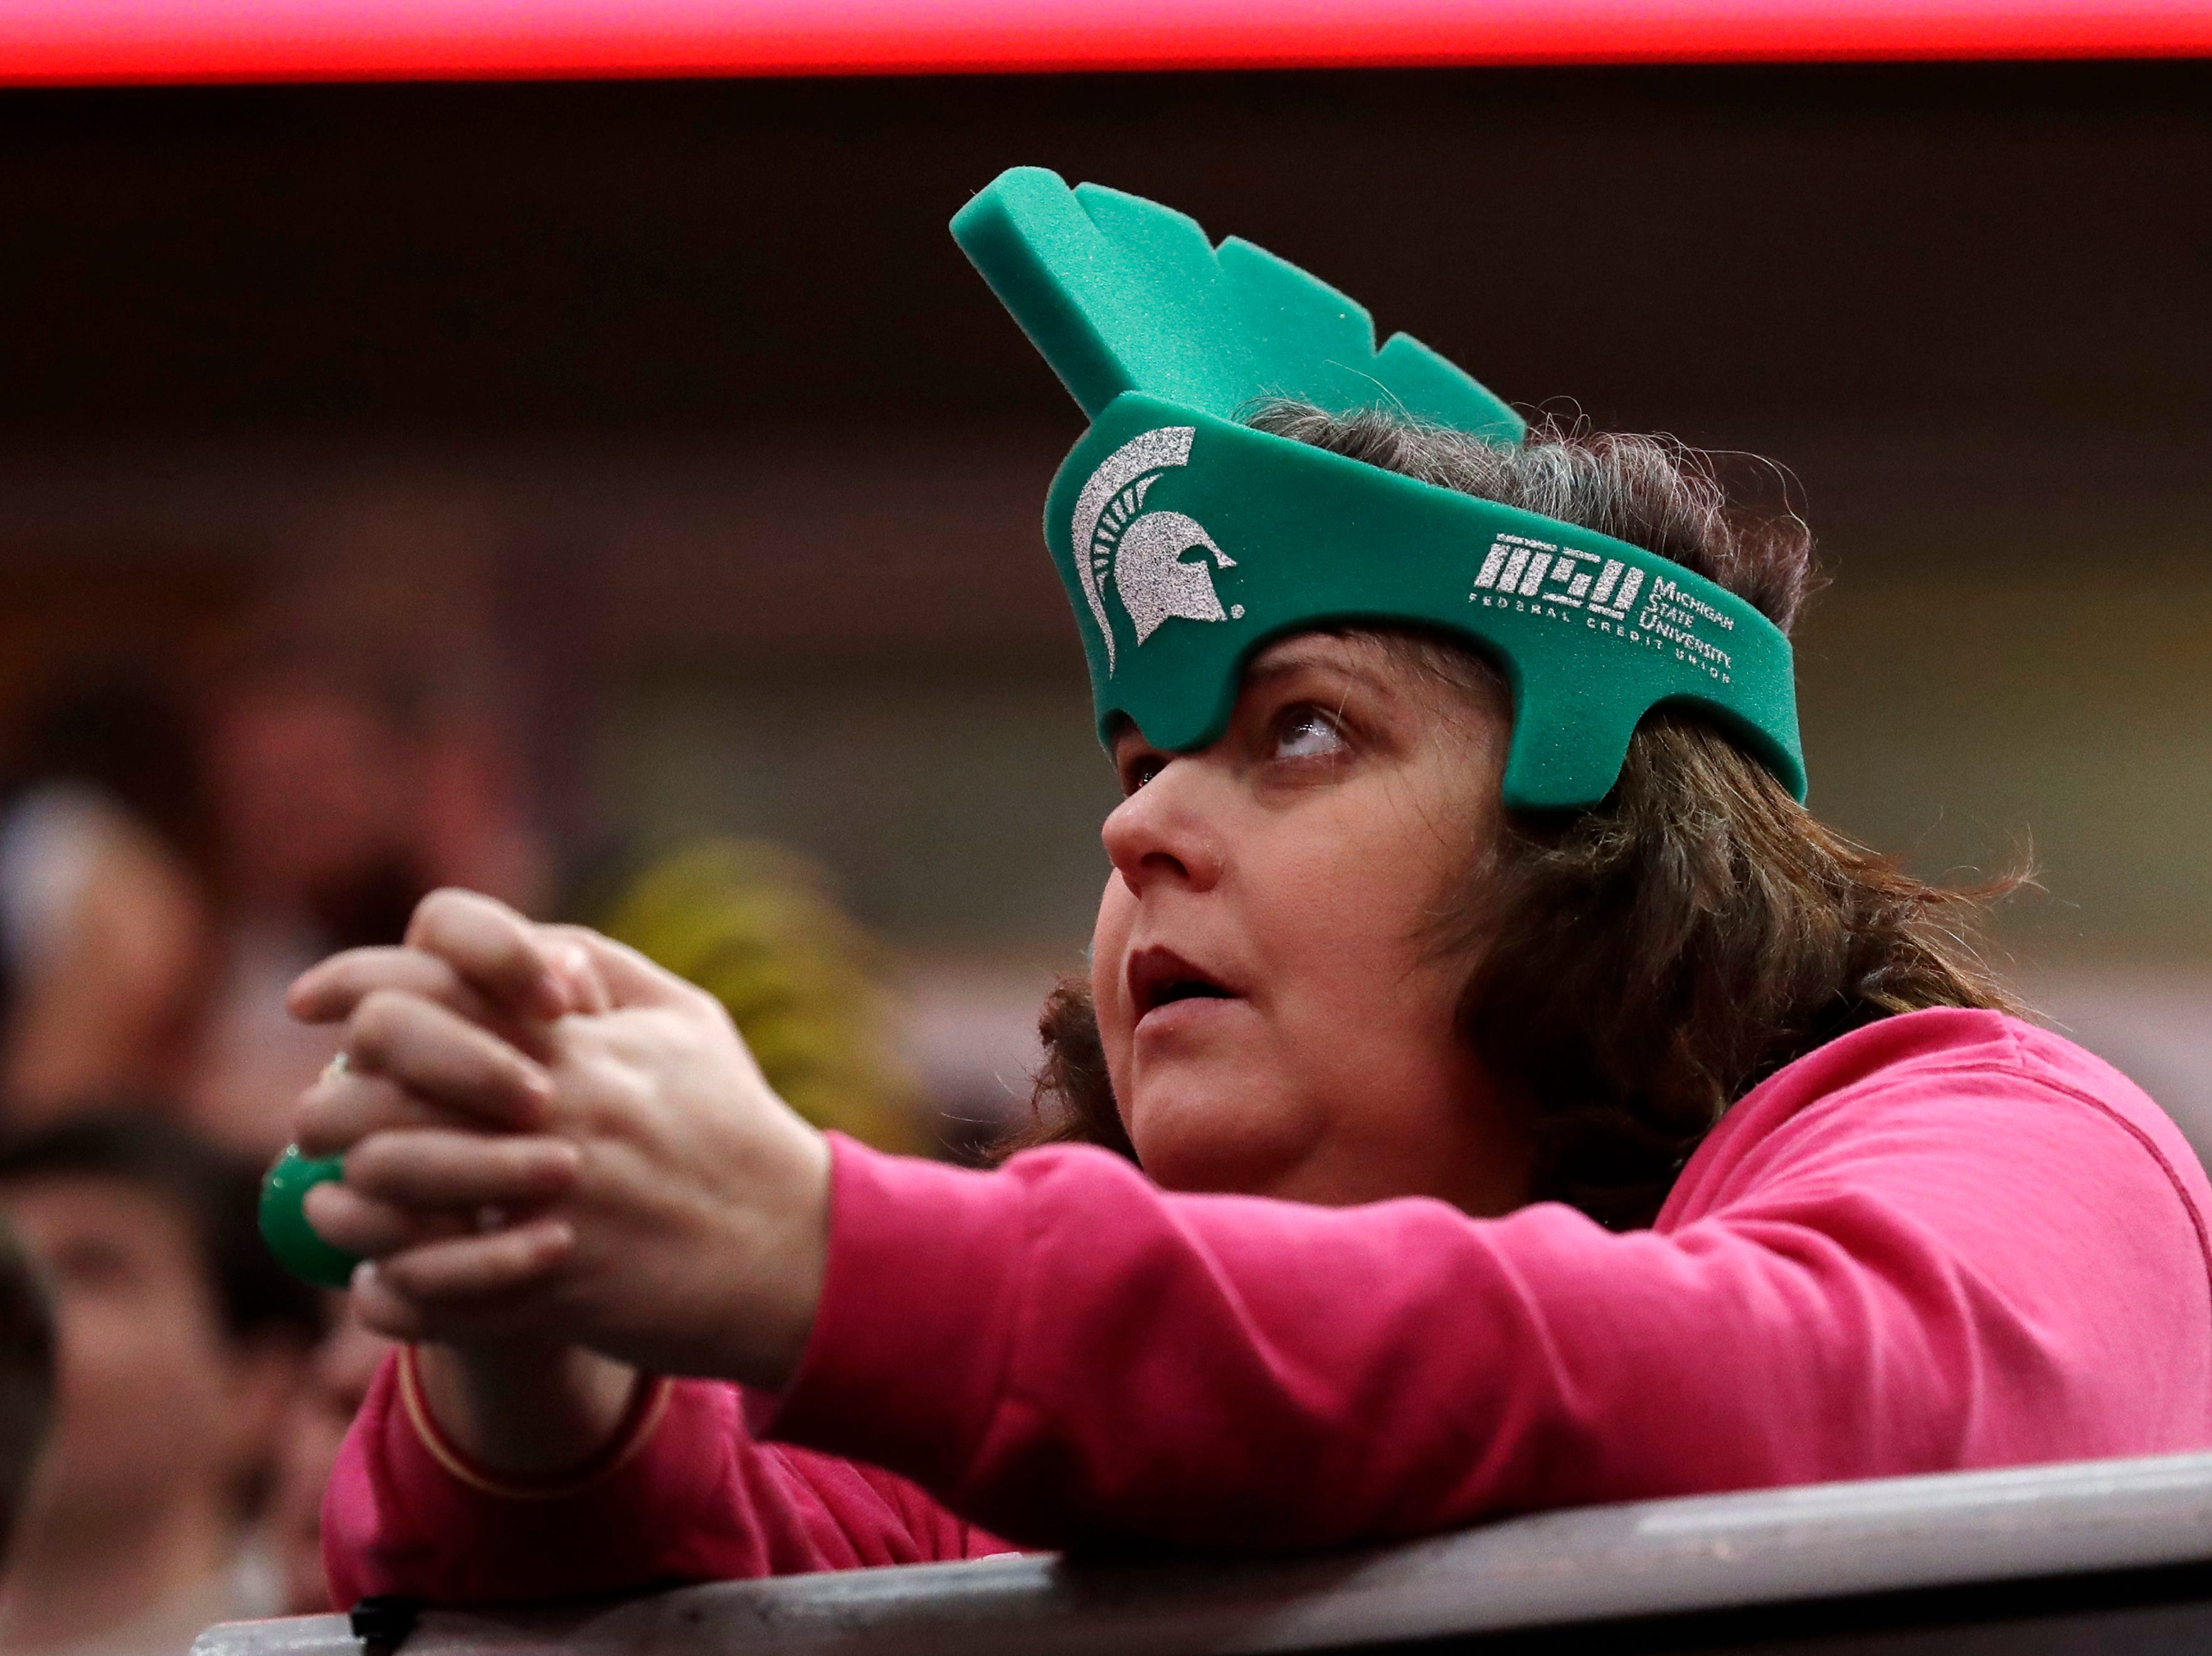 A Michigan State fan waits for an NCAA college basketball championship game between the Michigan State and the Michigan in the Big Ten Conference tournament, Sunday, March 17, 2019, in Chicago.